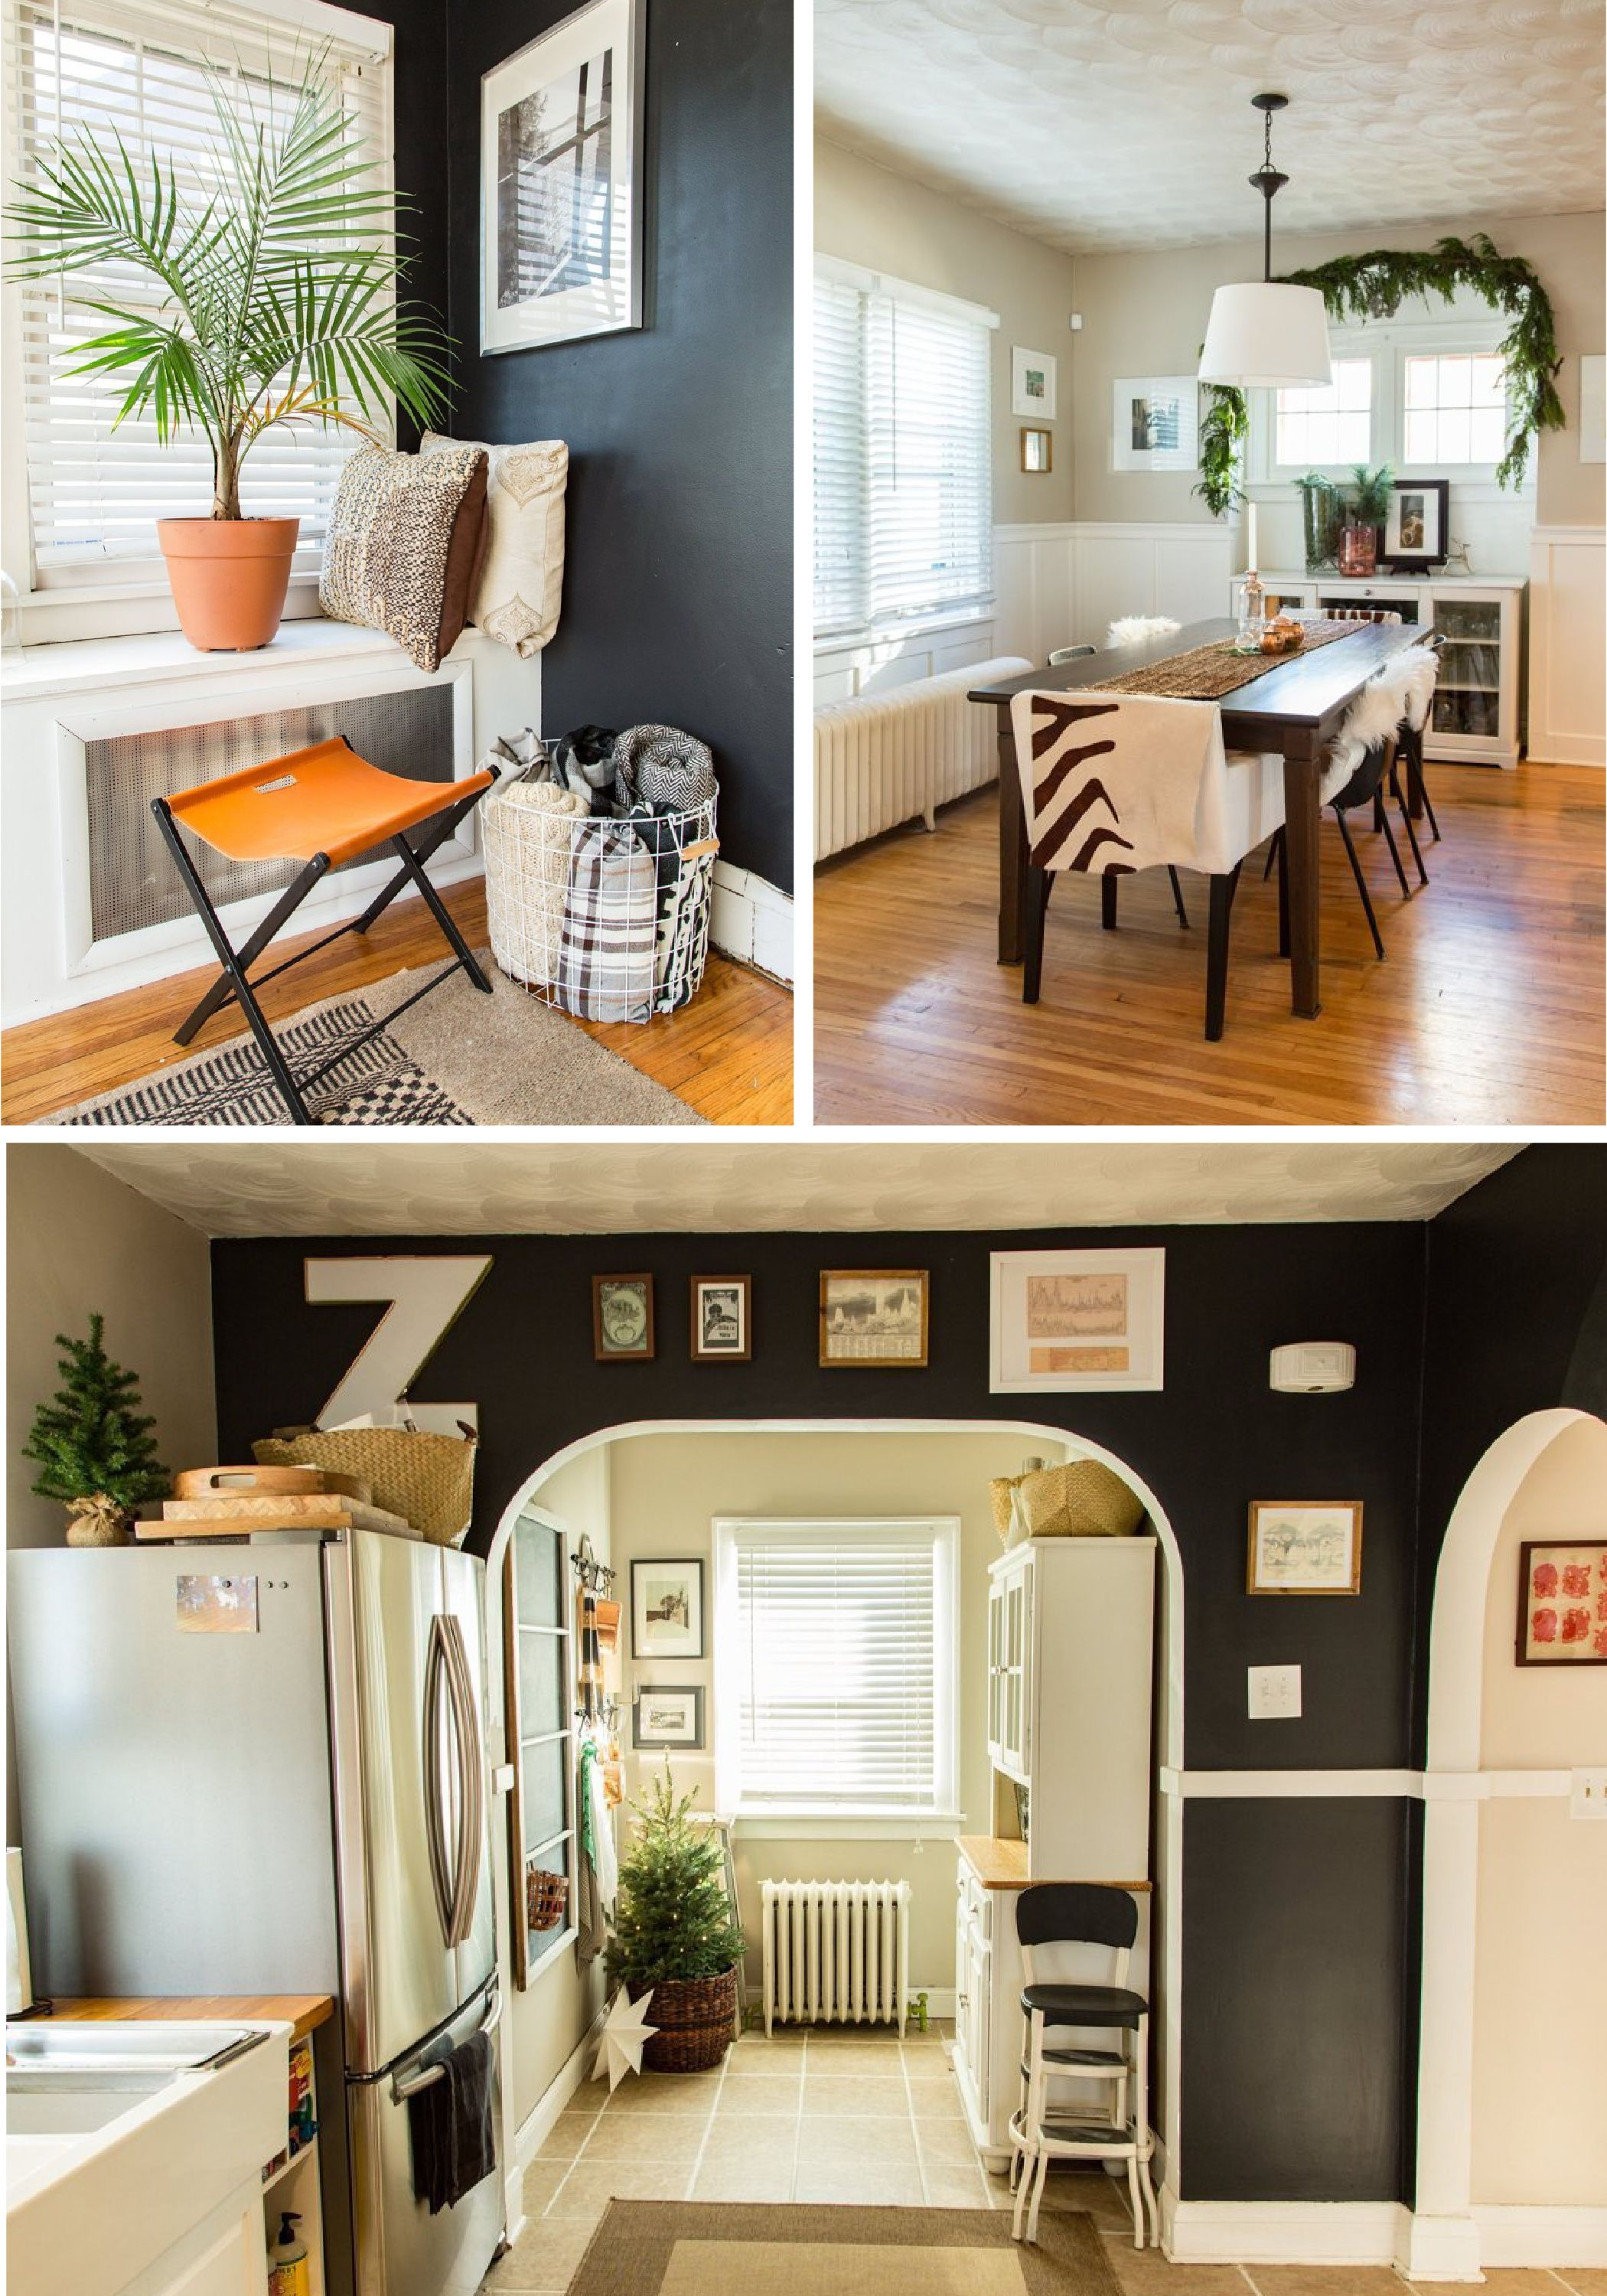 Transform your home into an eclectic design dream—with accents of cozy textures, sleek furniture, and personalized art decor! | Featured BEHR paints: Bitter Chocolate, Polar Bear, and Wheat Bread. Check out more from this post at Apartment Therapy.